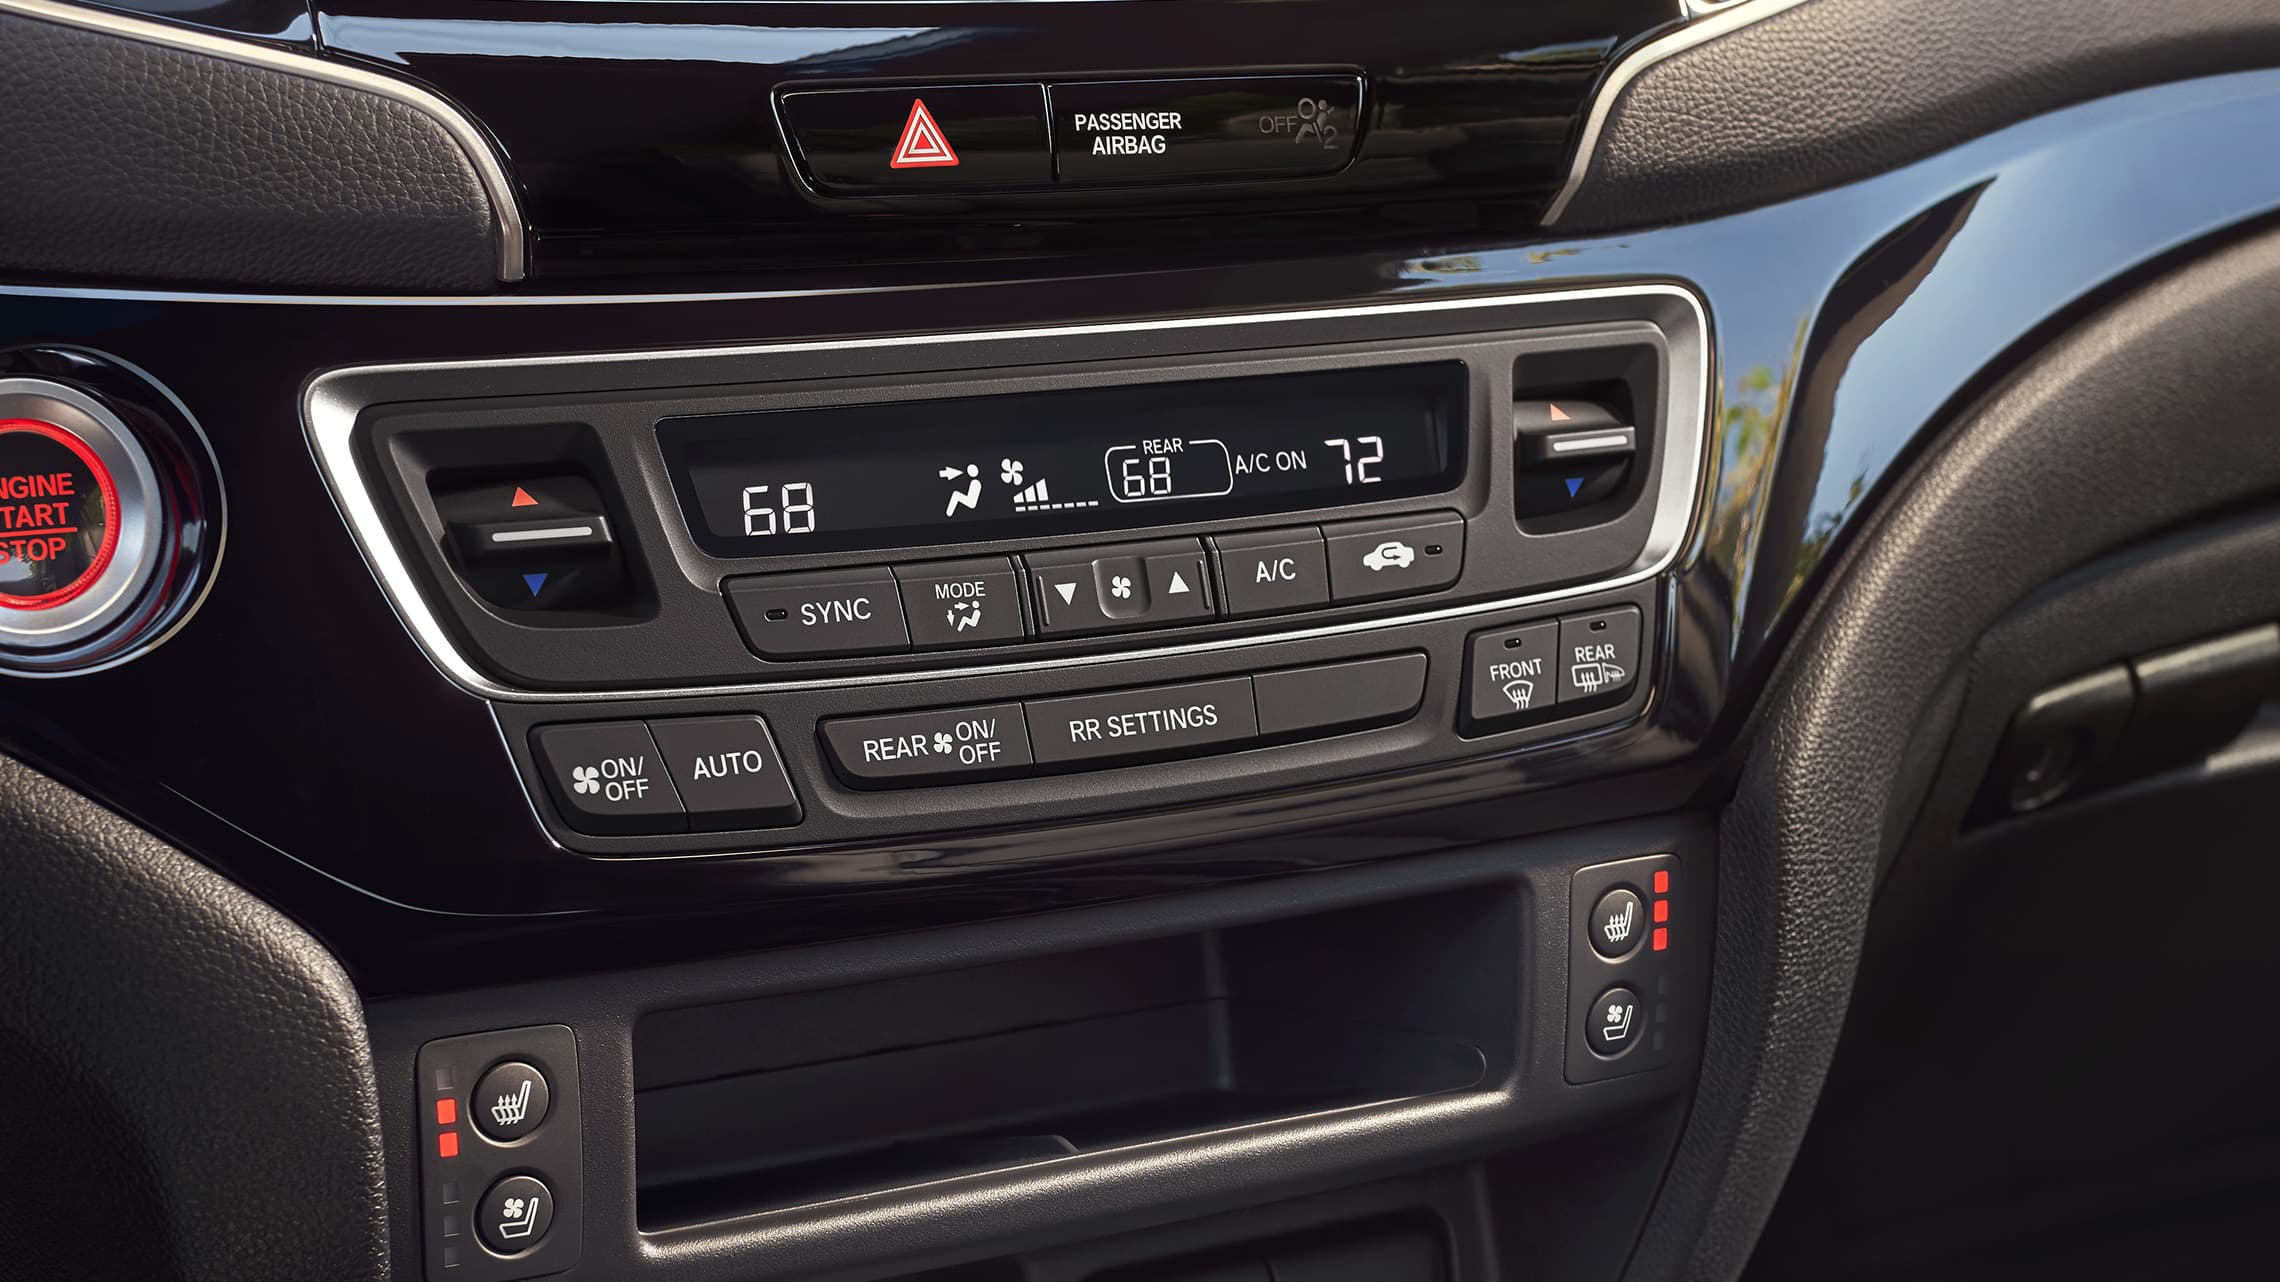 Tri-zone climate control detail on the 2019 Honda Passport Elite with Black Leather interior.